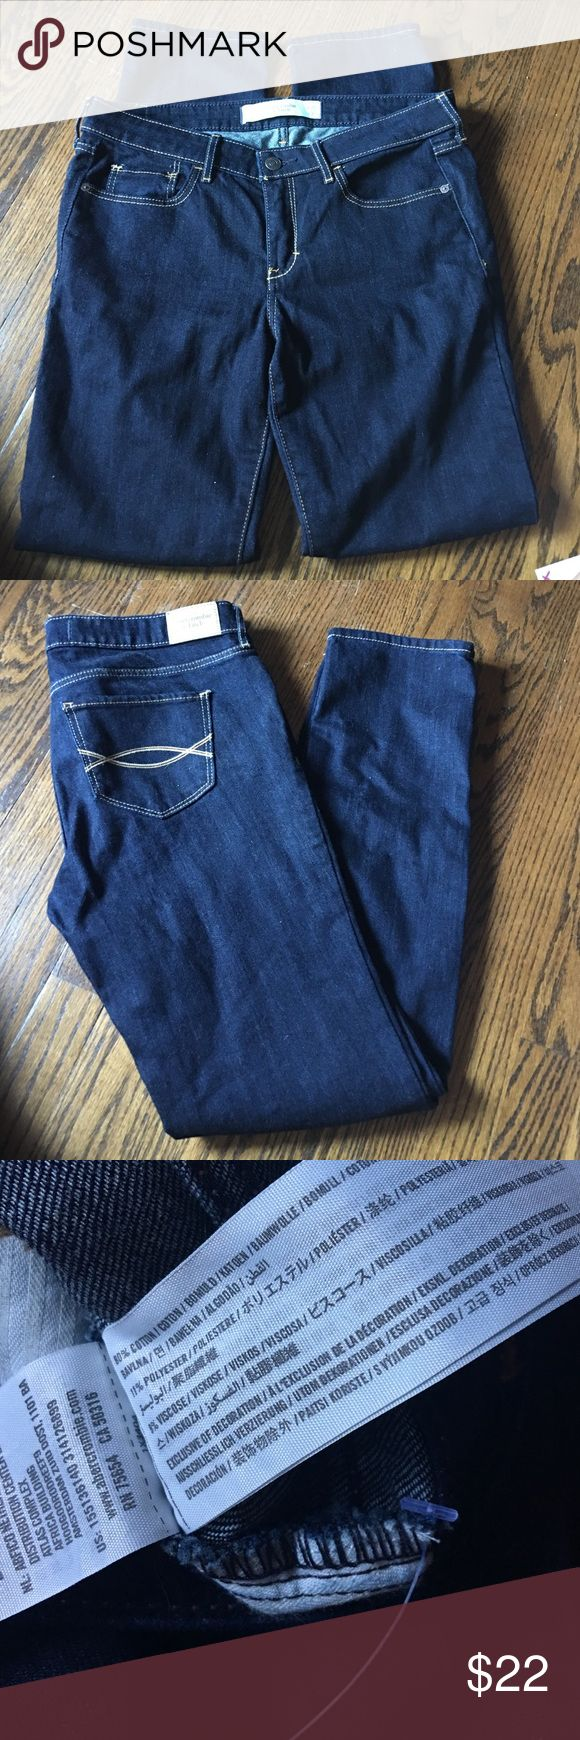 Abercrombie jeans Brand new. Purchased short to fit at a perfect ankle length. Just never wore them Abercrombie & Fitch Jeans Straight Leg